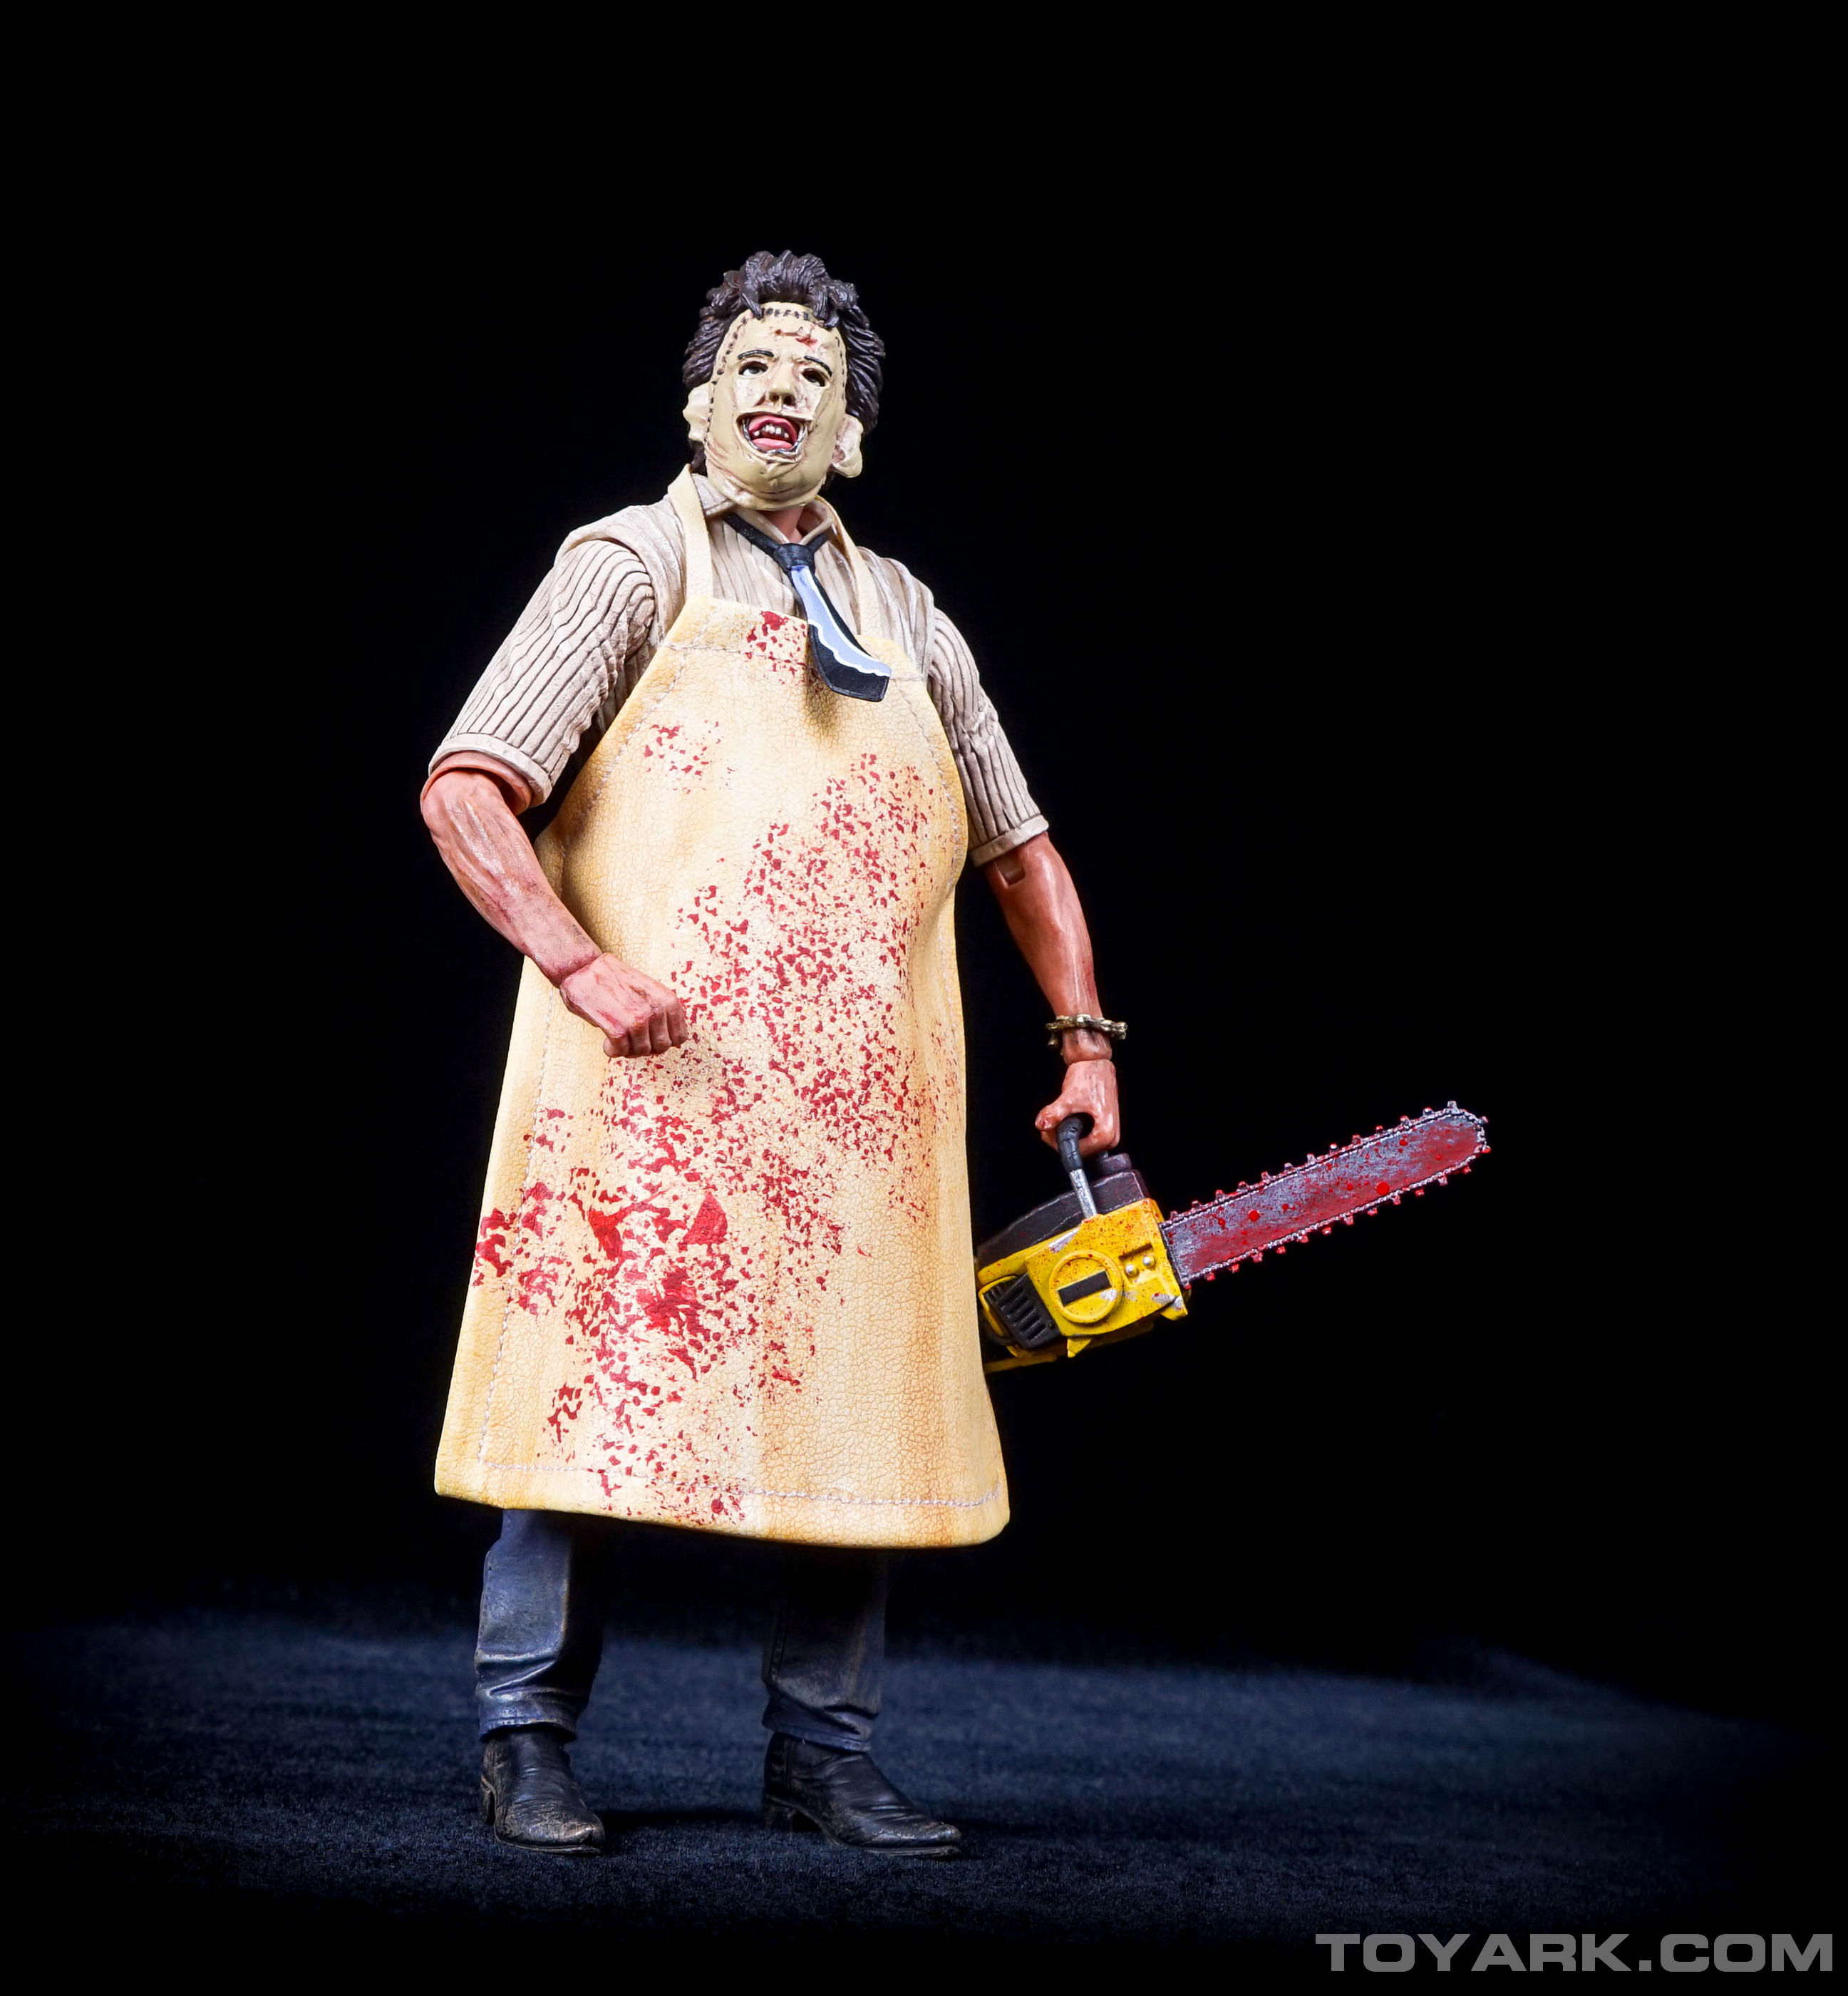 http://news.toyark.com/wp-content/uploads/sites/4/2015/08/NECA-TCM-Ultimate-Leatherface-035.jpg